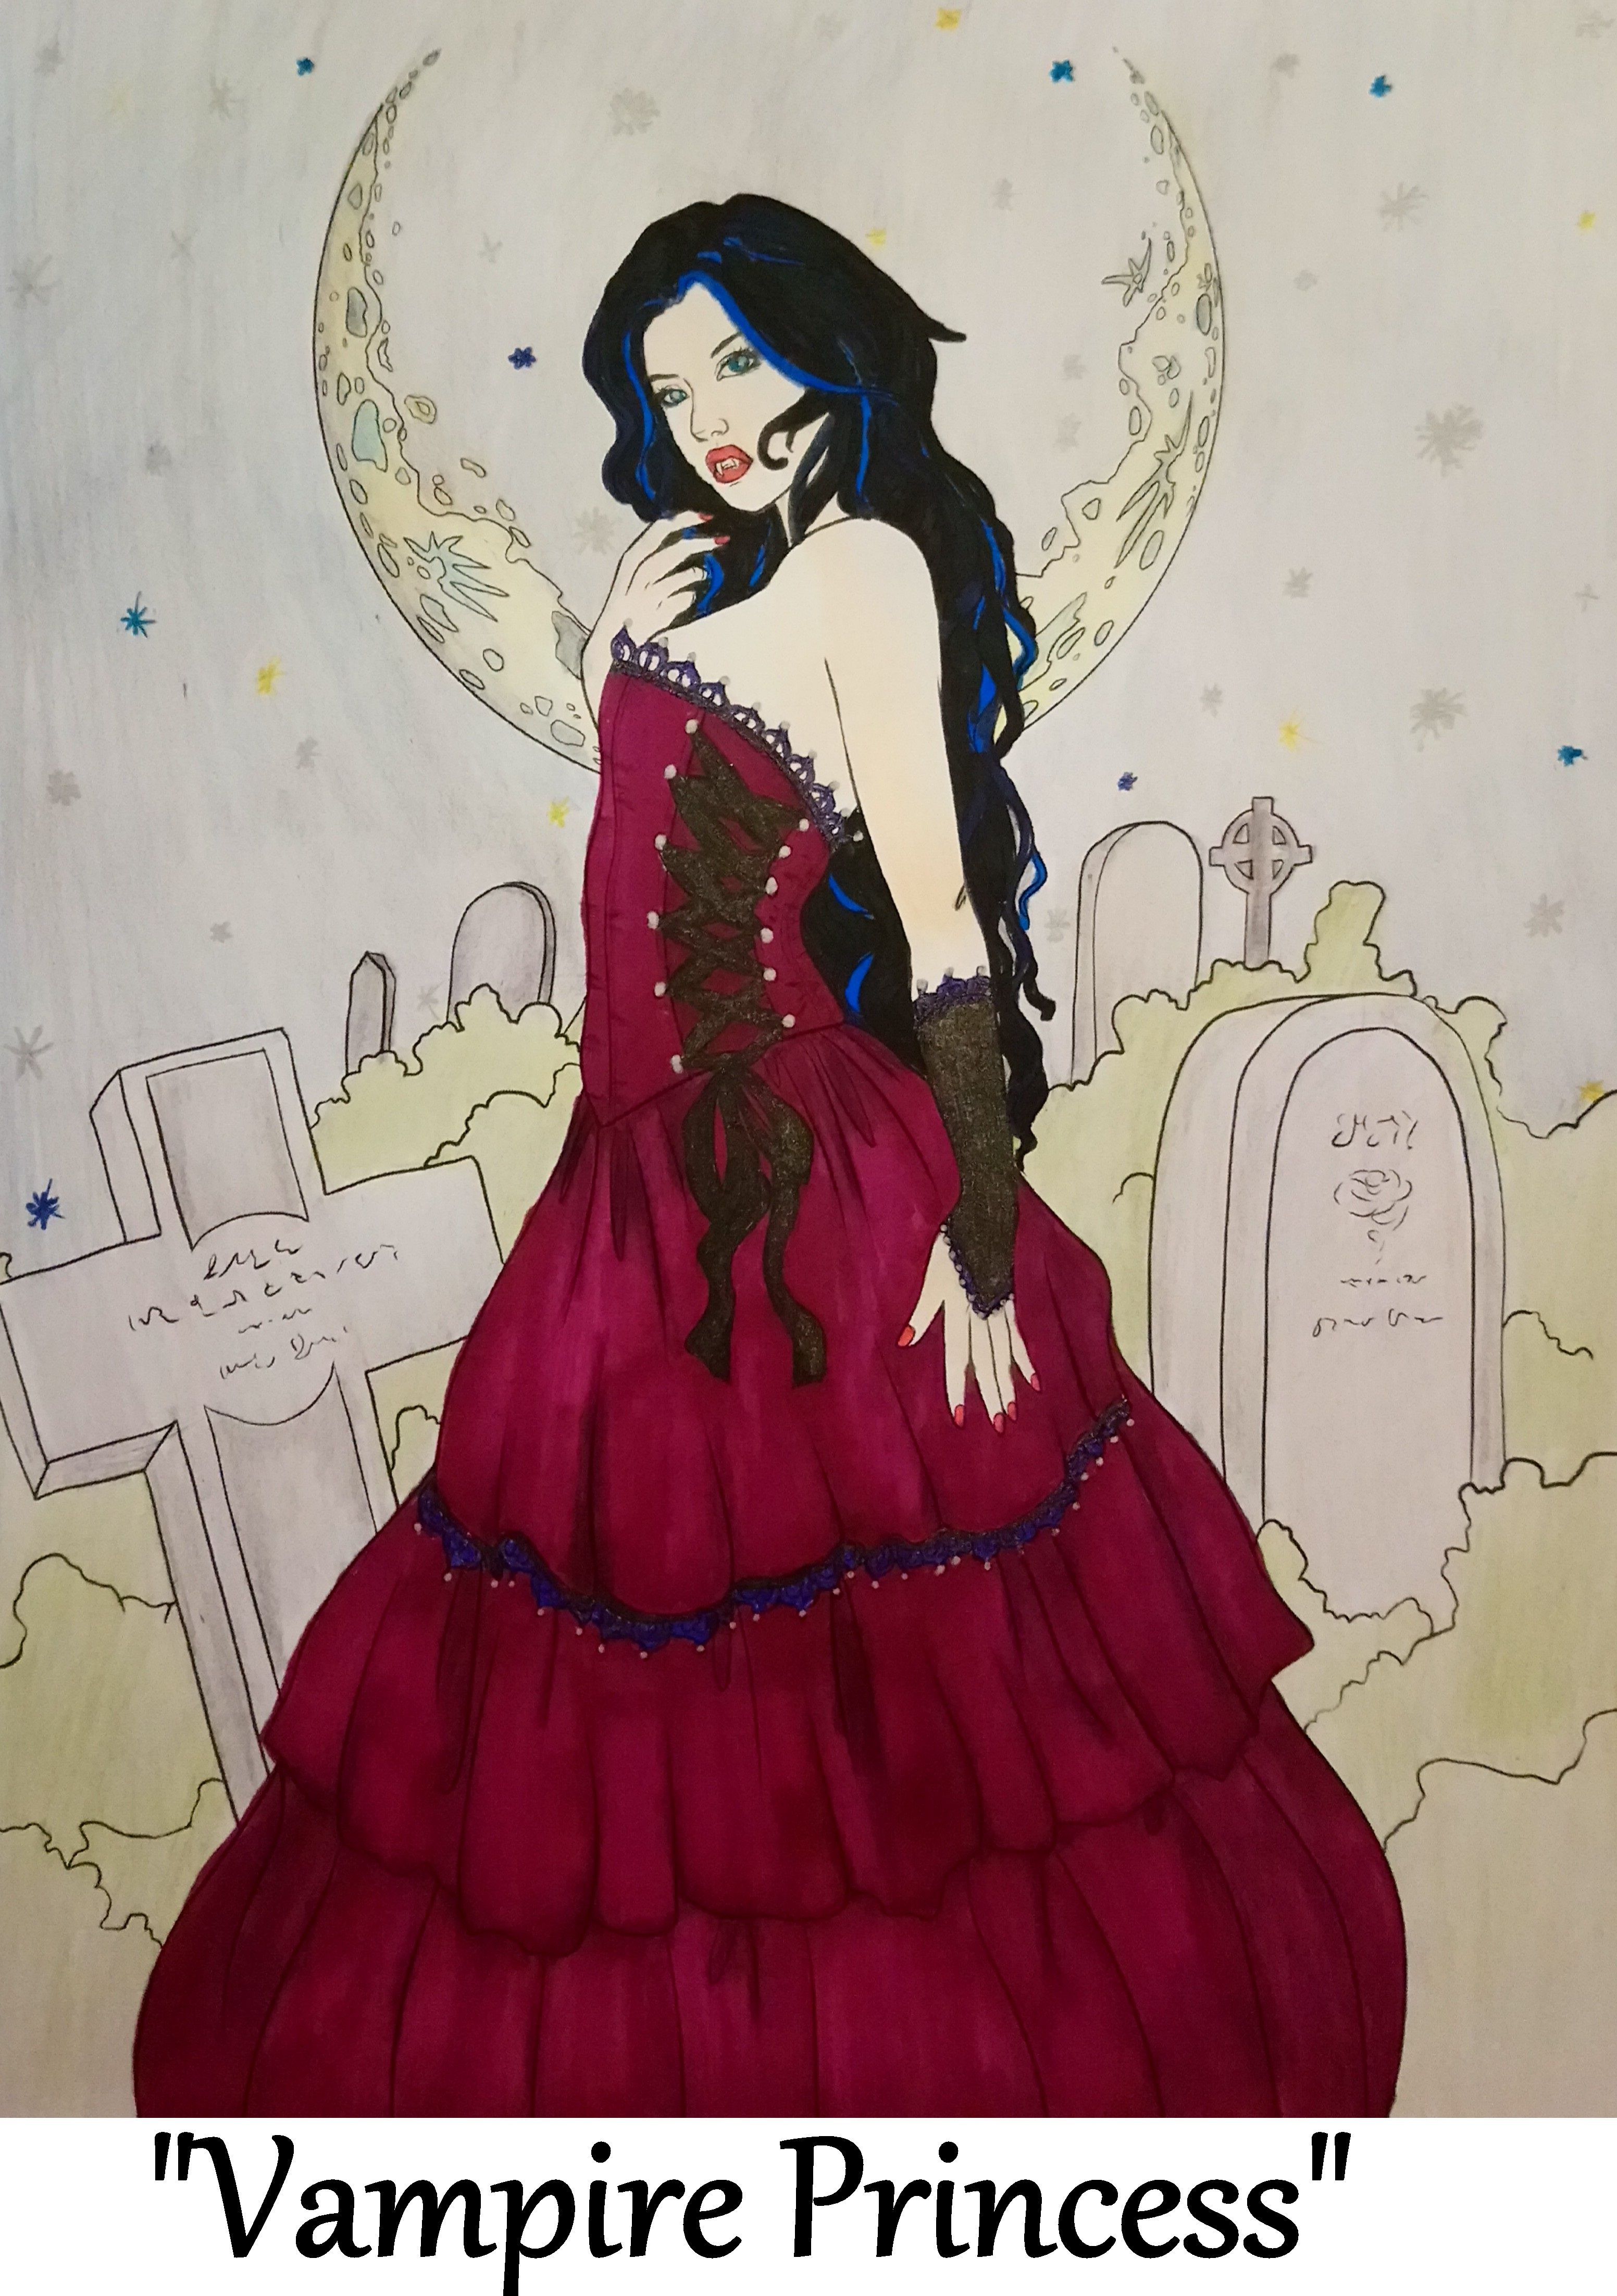 Vampire Princess From Night Magic Gothic And Halloween Coloring Book By Selina Fenech Halloween Coloring Book Coloring Books Halloween Coloring